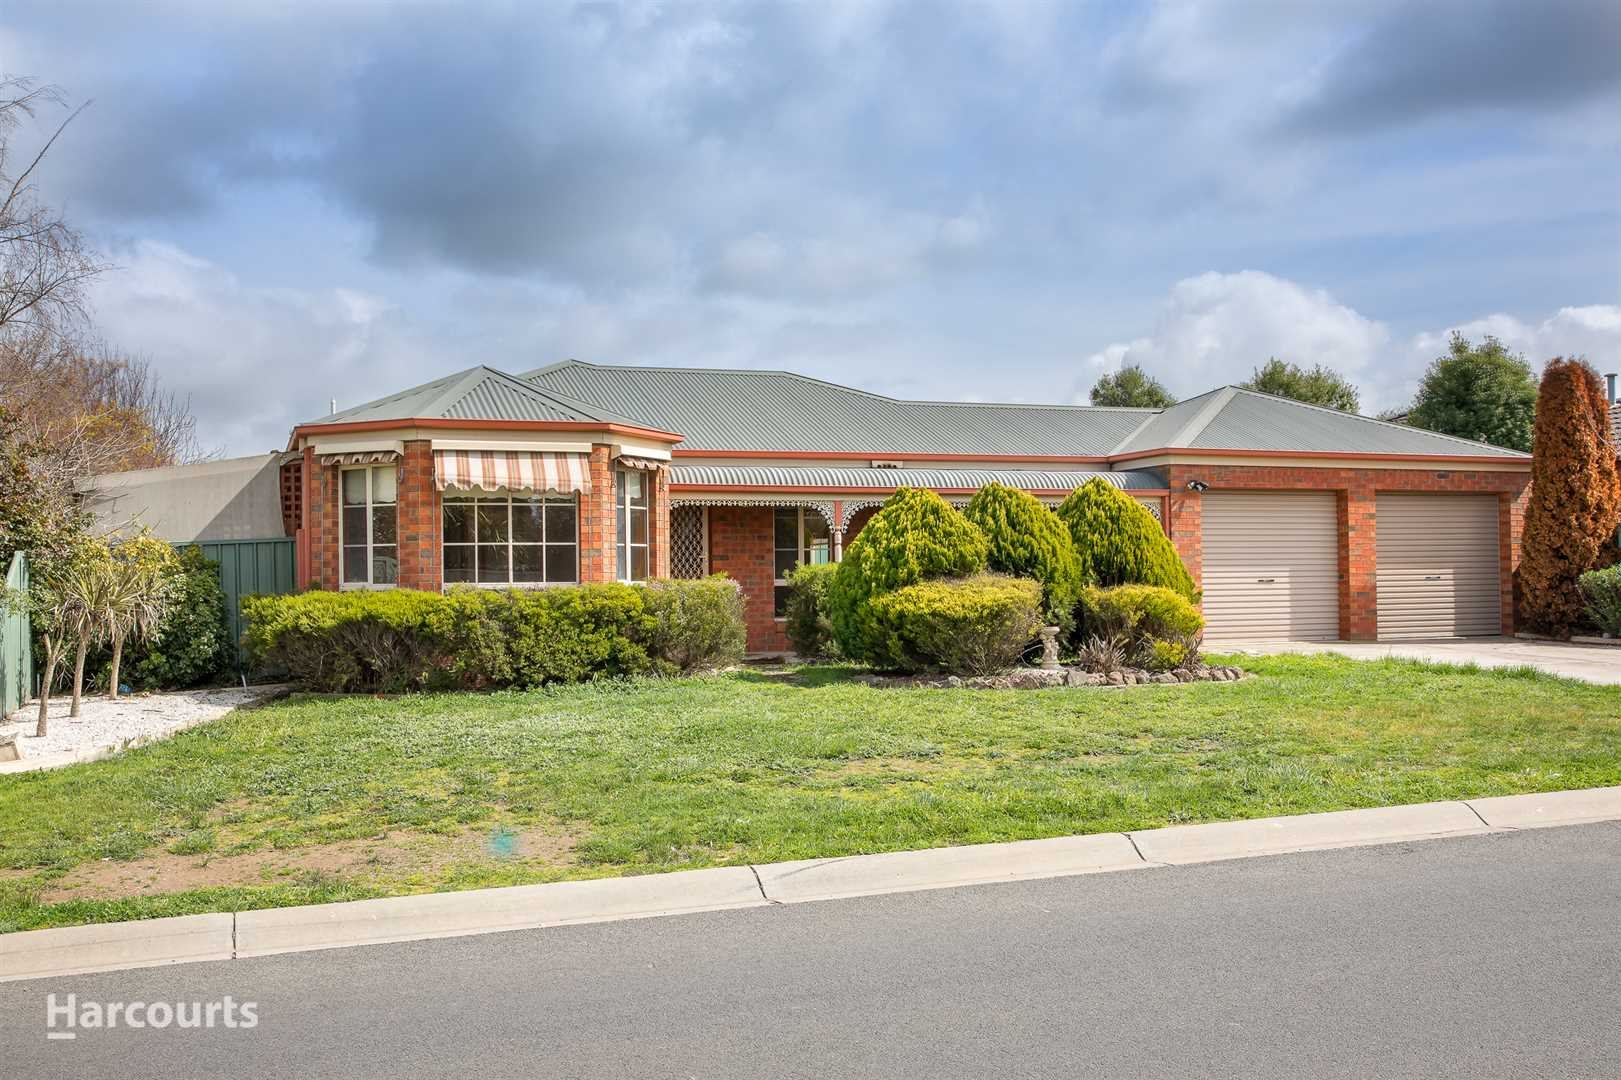 4 Bedrooms - Outdoor Entertaining - Double Garage Plus Shed